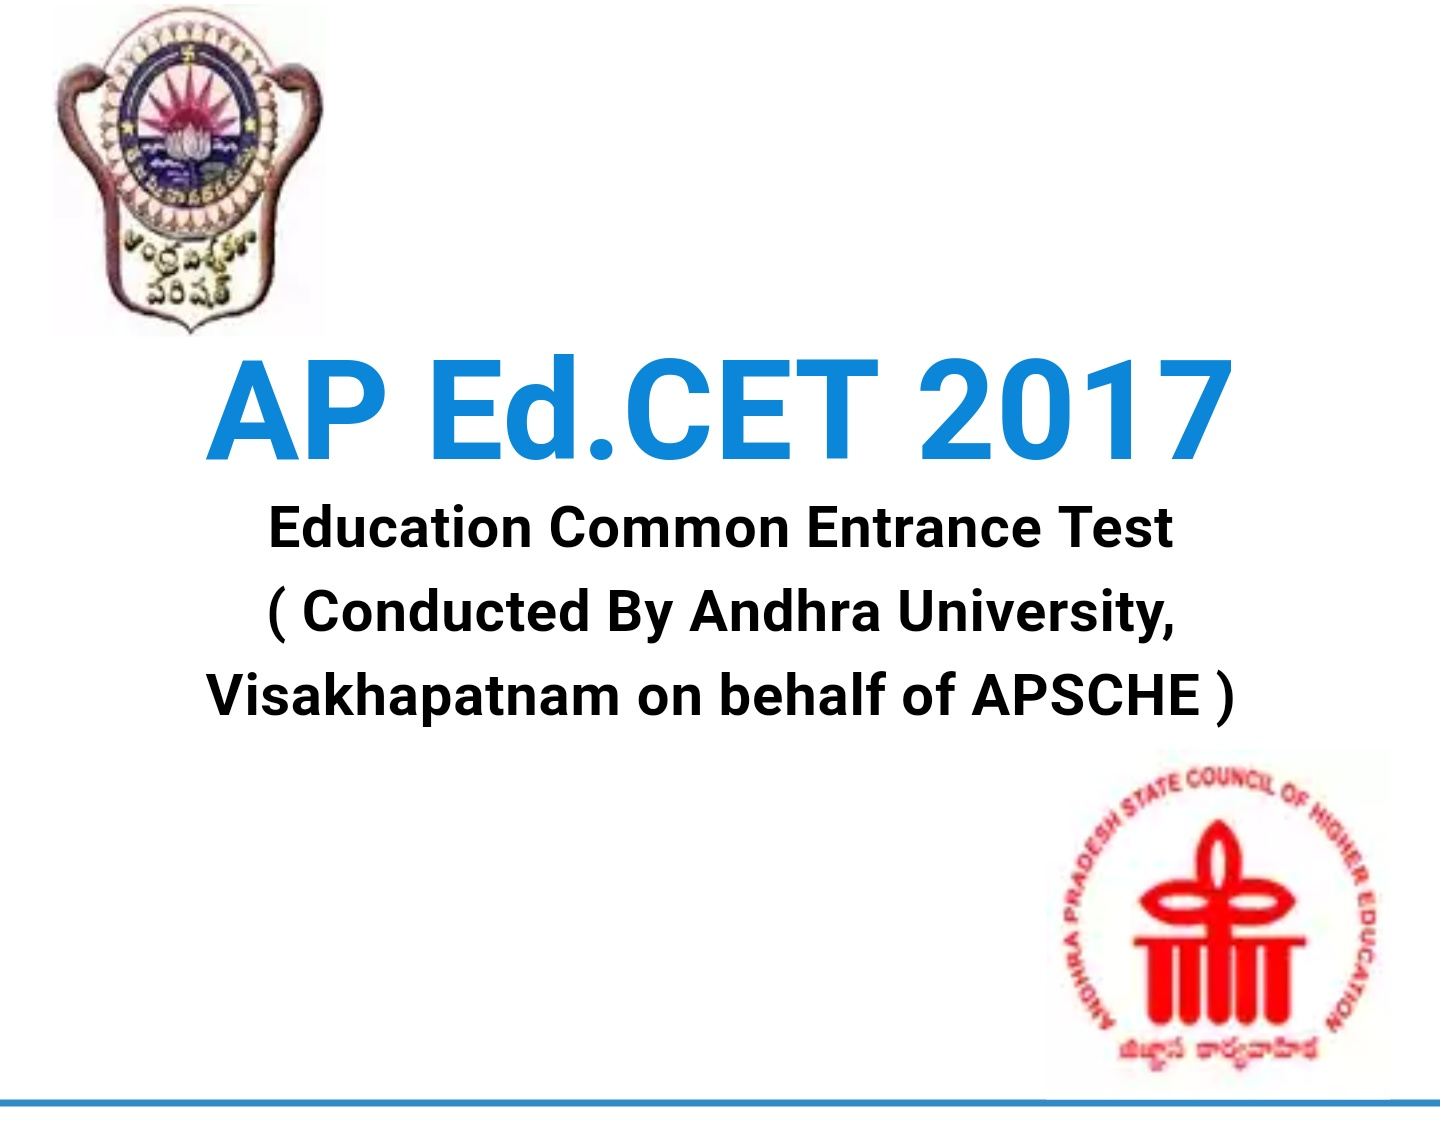 AP LAWCET, PGLCET Exam 2017: Results declared, check them here